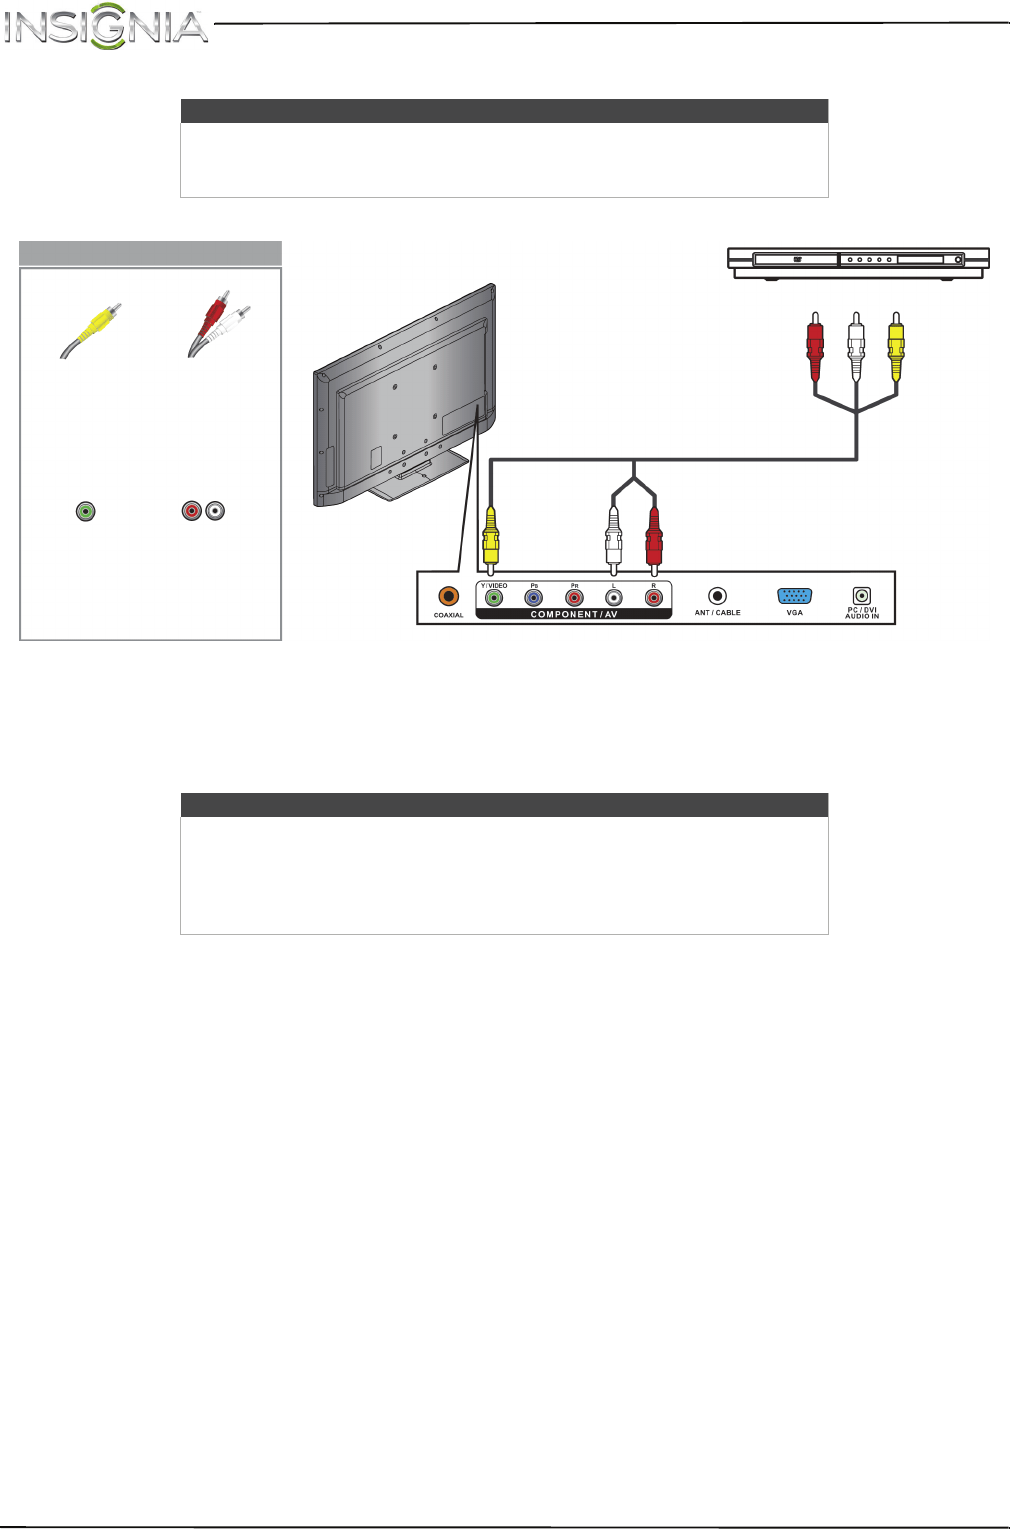 Insignia CRT Television NS-39D40SNA14 manual (page 26 of 80)